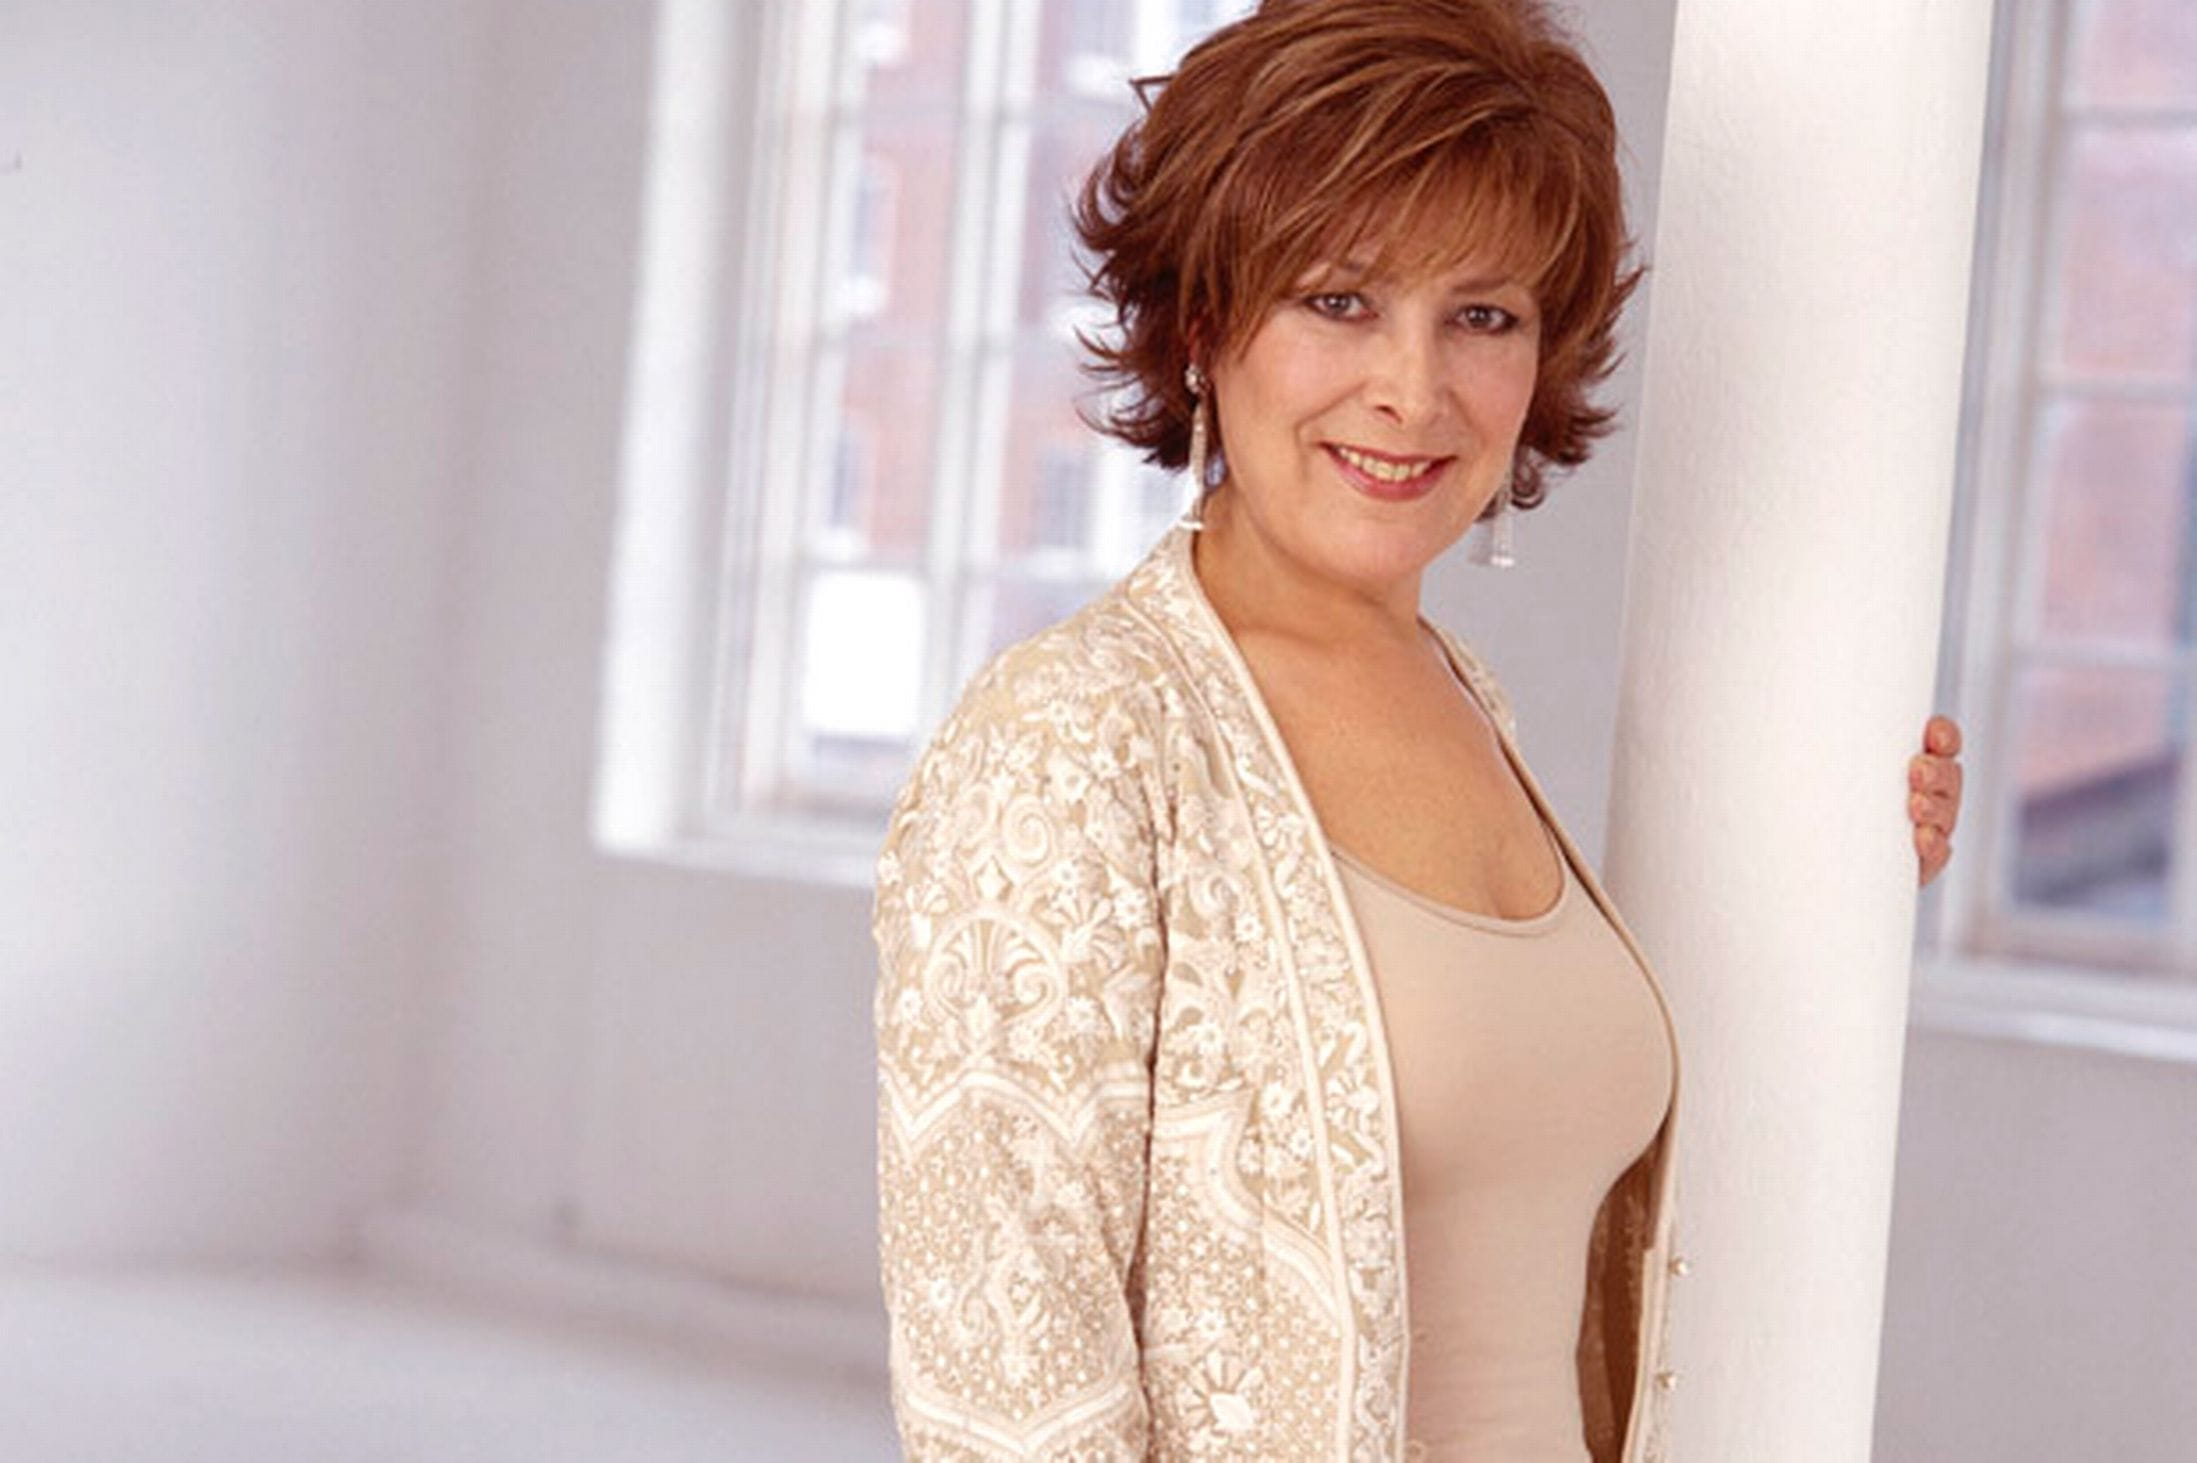 Lynda Bellingham HQ wallpapers